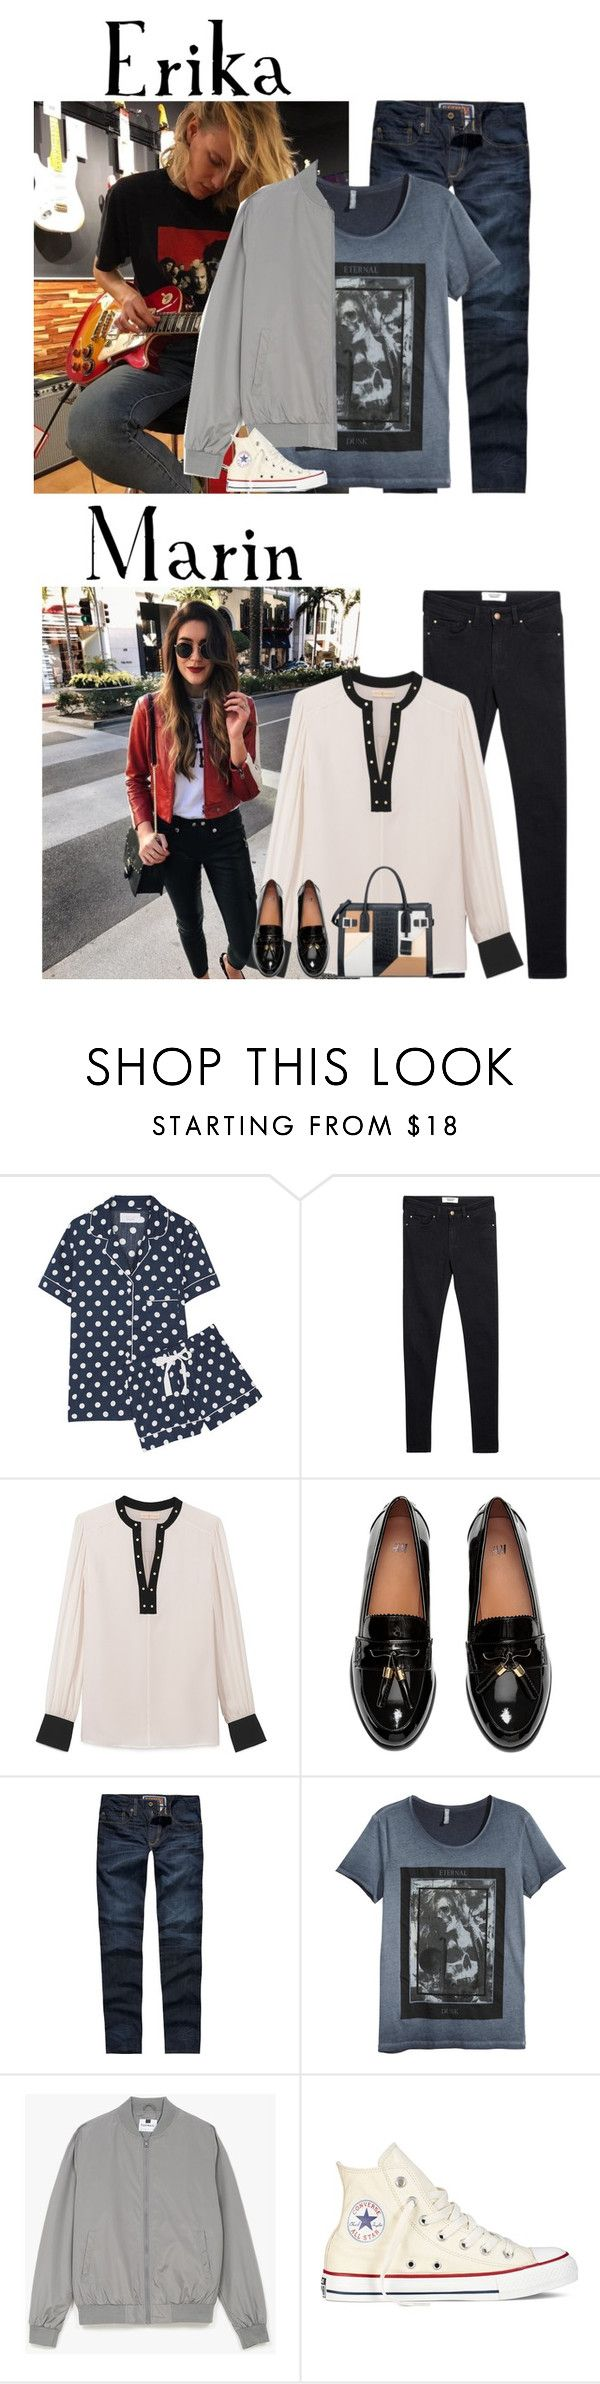 """""""Wednesday // Taking Landon to the Aquarium // 12/28/16"""" by graywolf520 ❤ liked on Polyvore featuring Three J NYC, MANGO, Tory Burch, H&M, Levi's, Topman, Converse, Nine West and MarinandErika"""